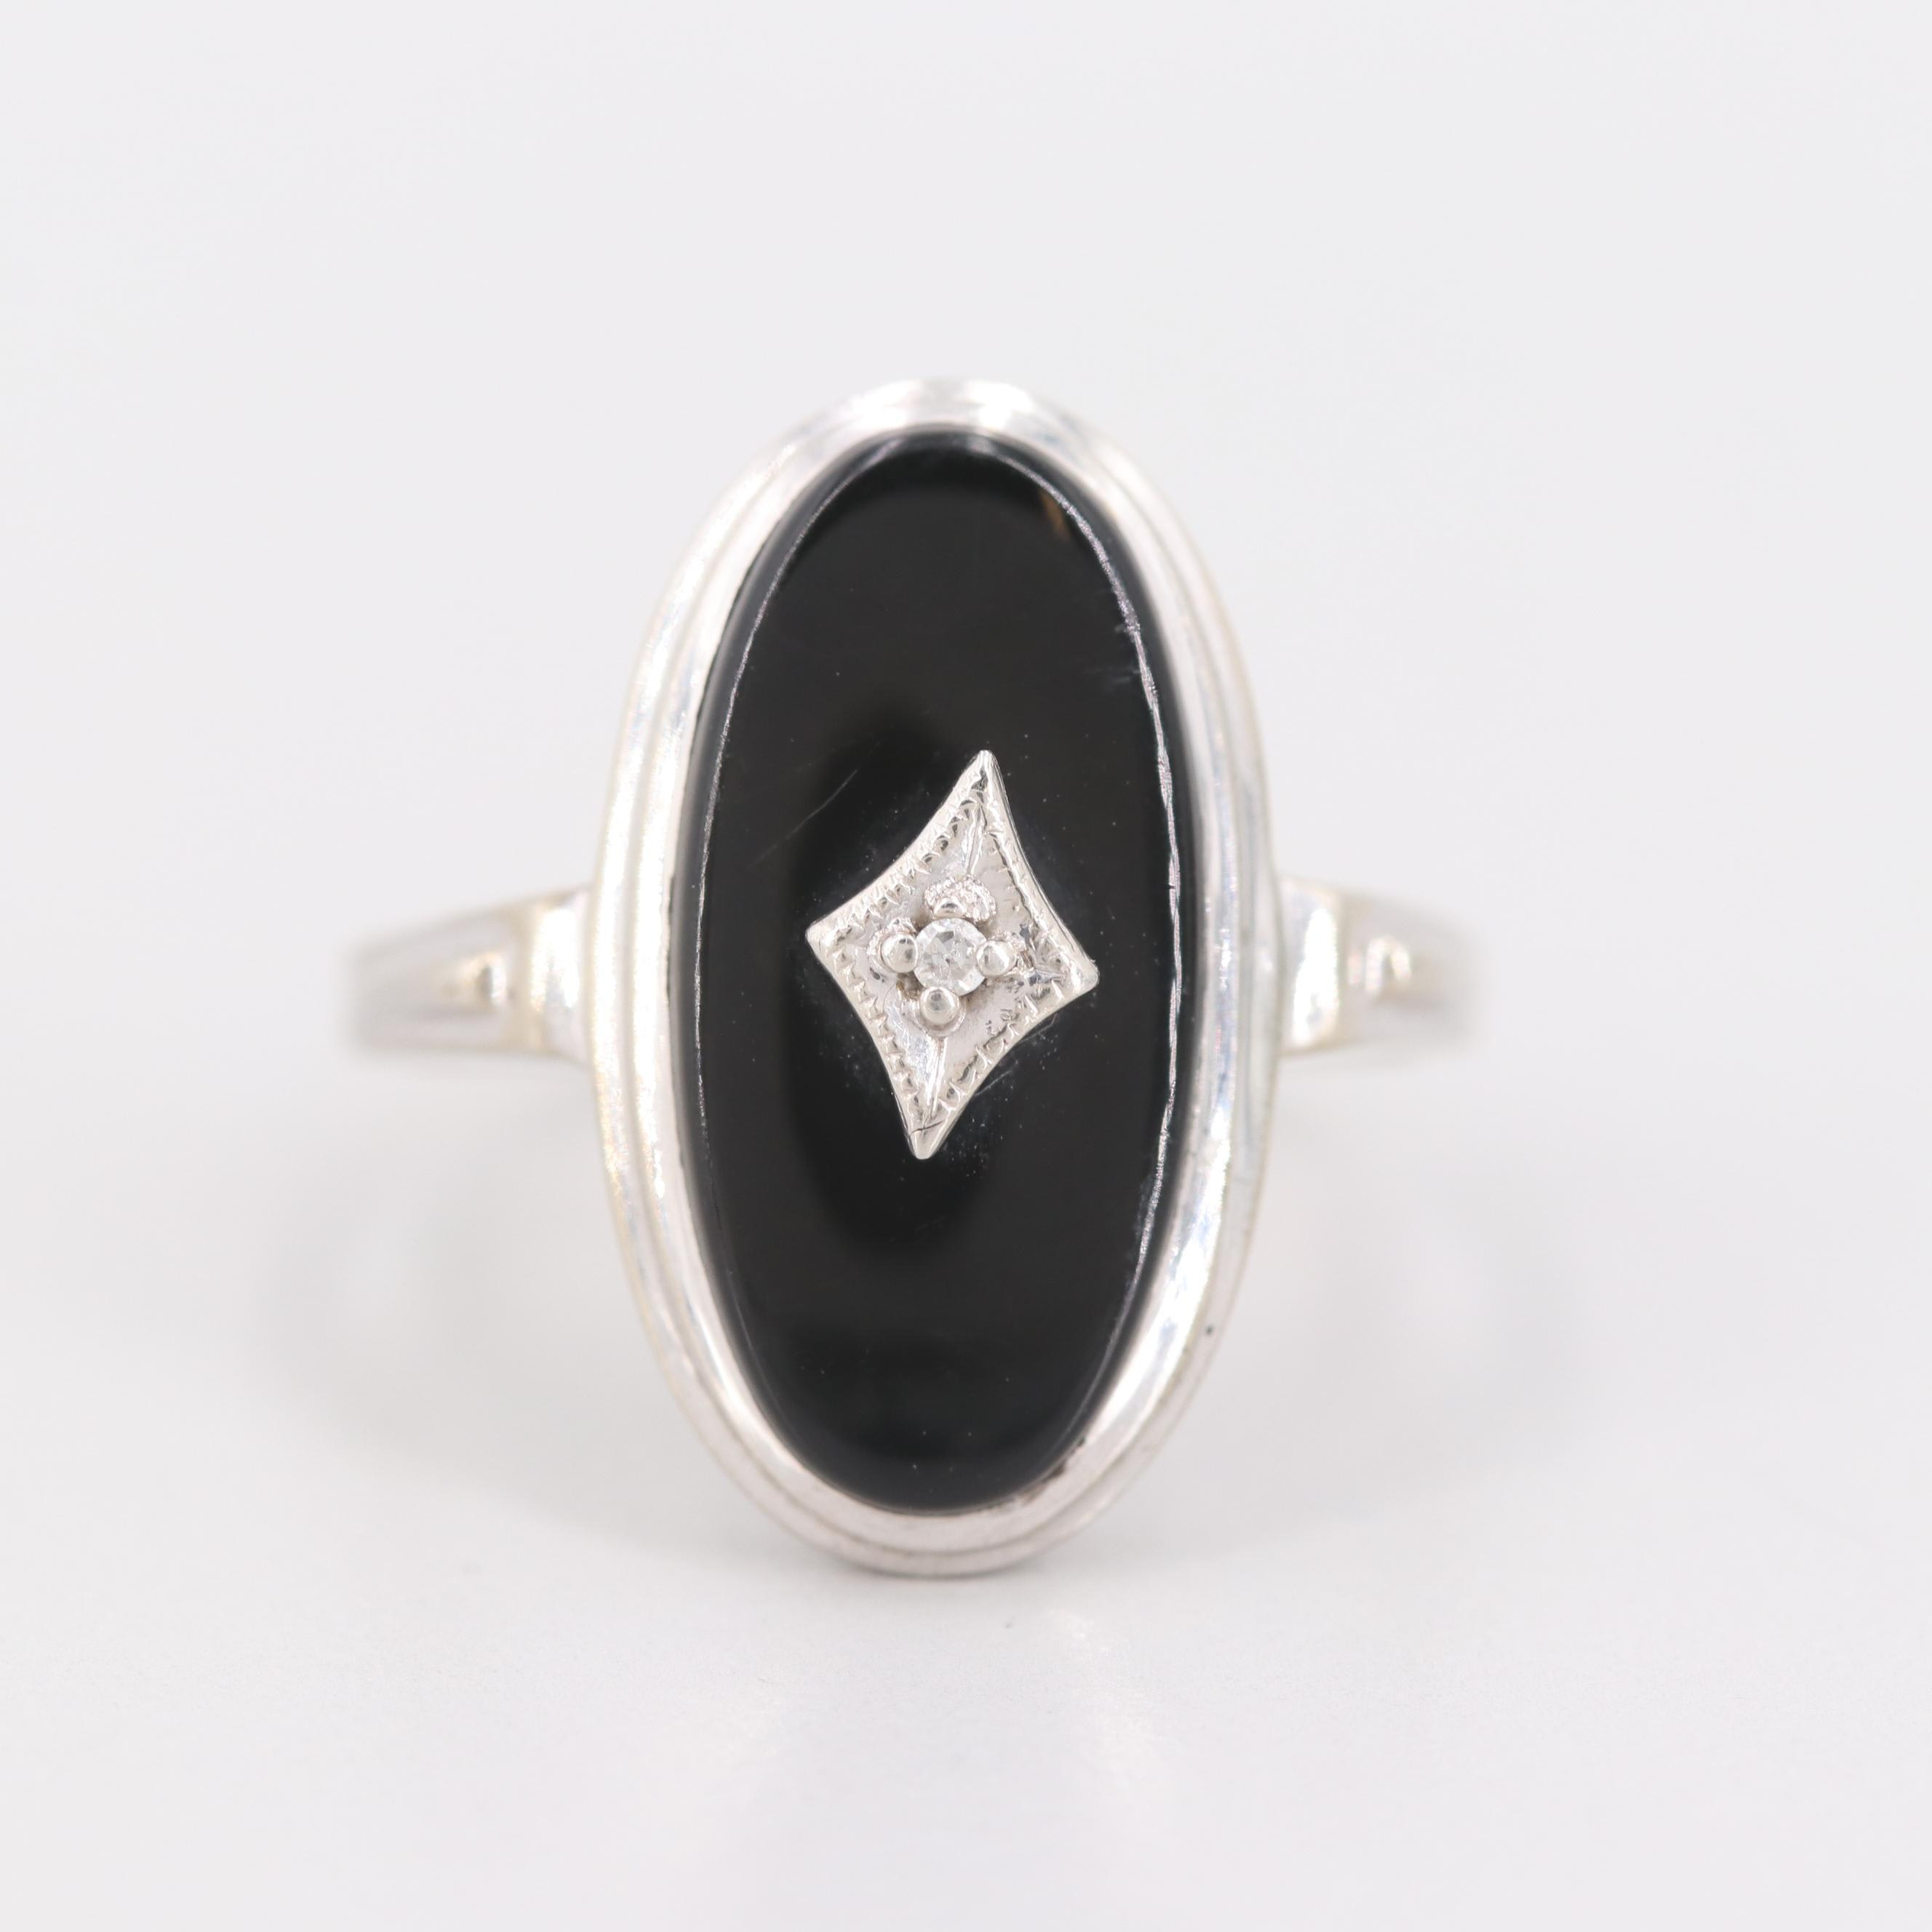 Vintage Harmony Wedding Ring Co. 10K White Gold Diamond and Black Onyx Ring